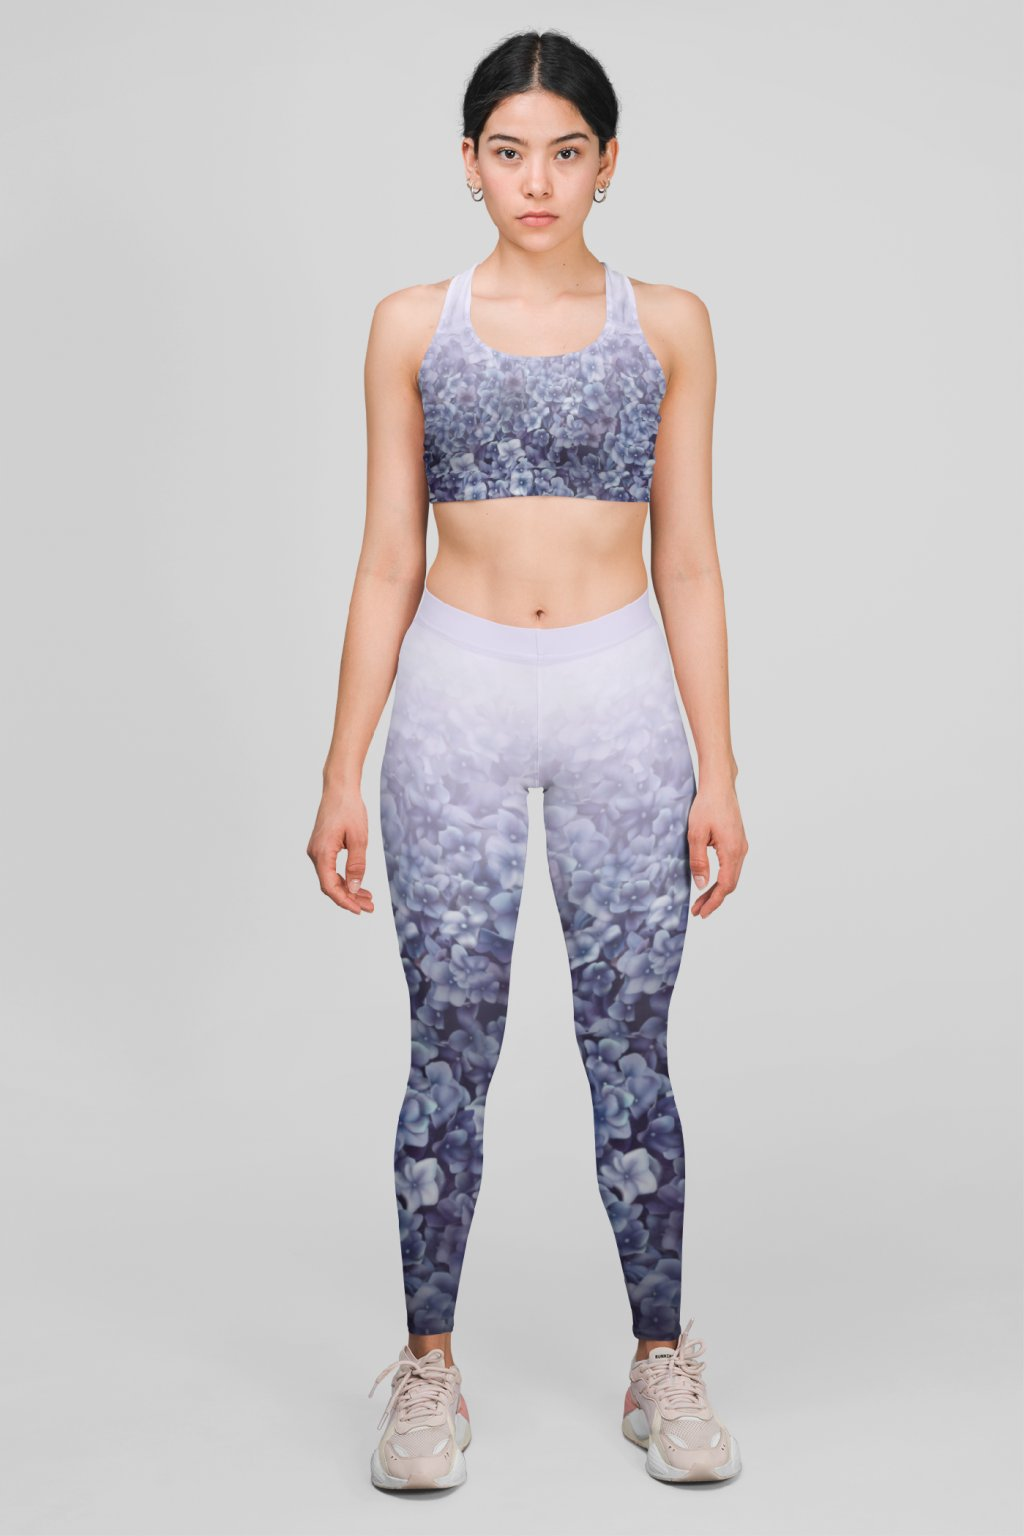 mockup featuring a woman wearing a sports bra and leggings at a studio 28720 (1)